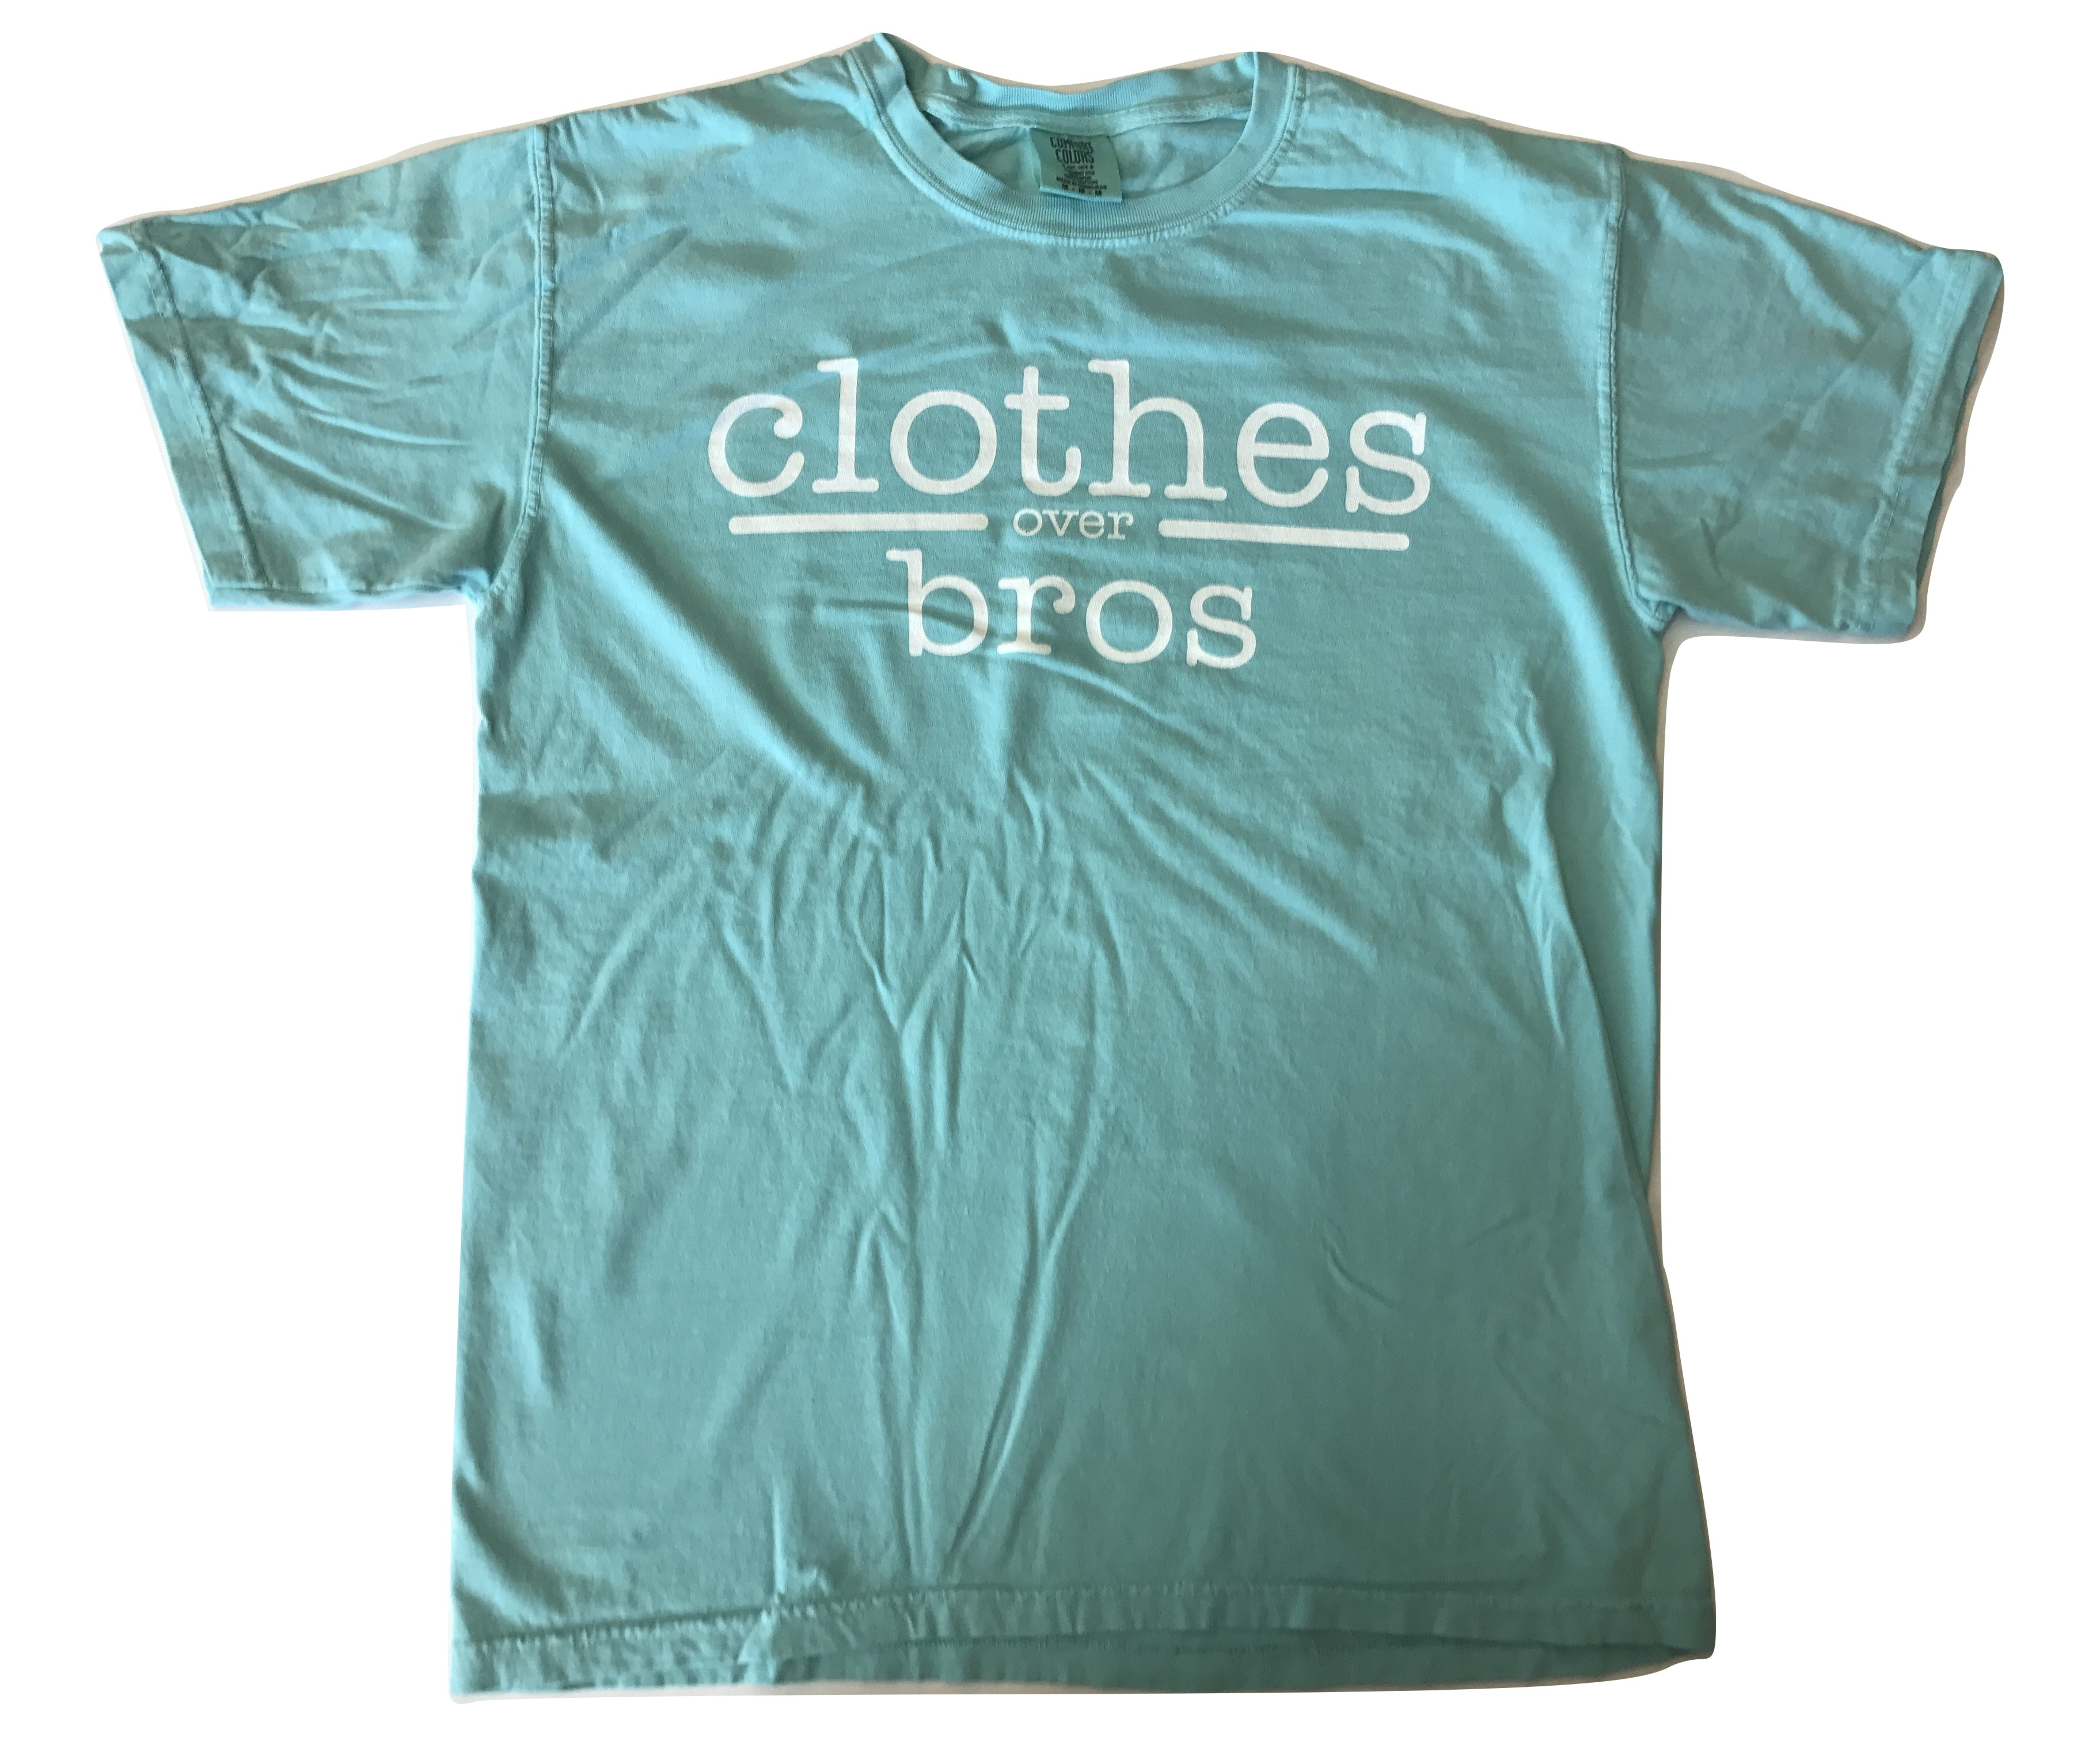 Clothes over bros t shirt chalky mint comfort color for Mint color t shirt